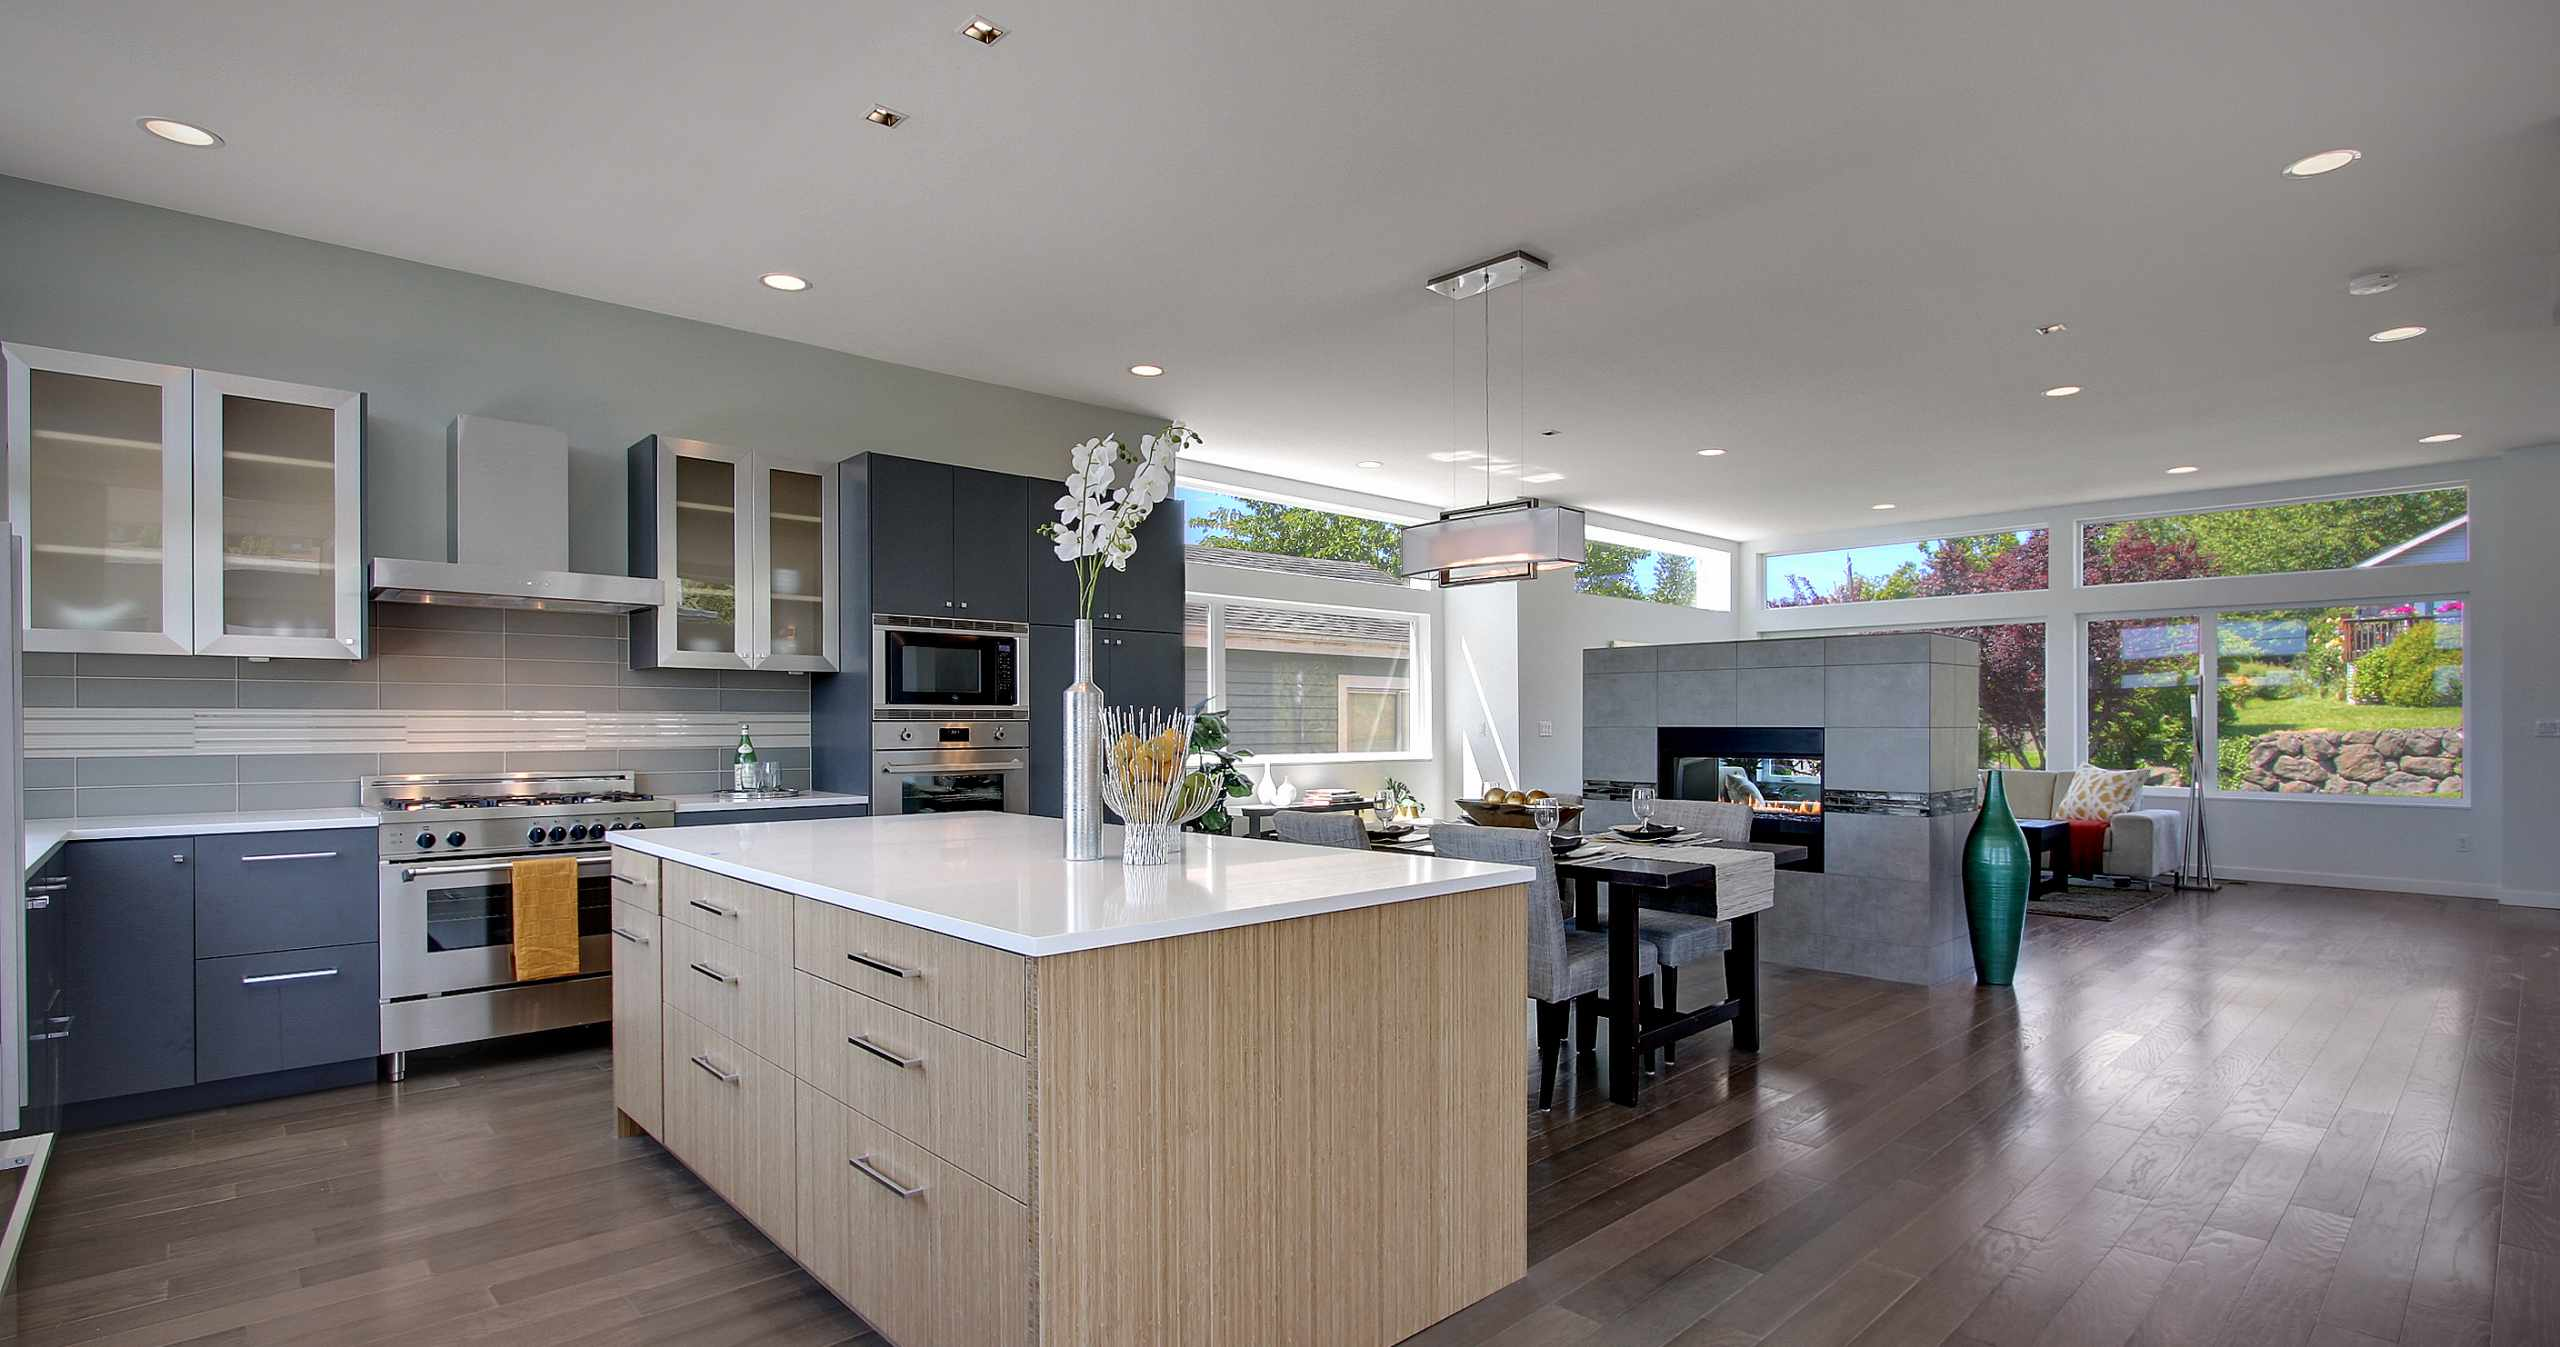 Modern Kitchen, Kitchen Island, Stainless Steel Appliances, Modern Cabinets